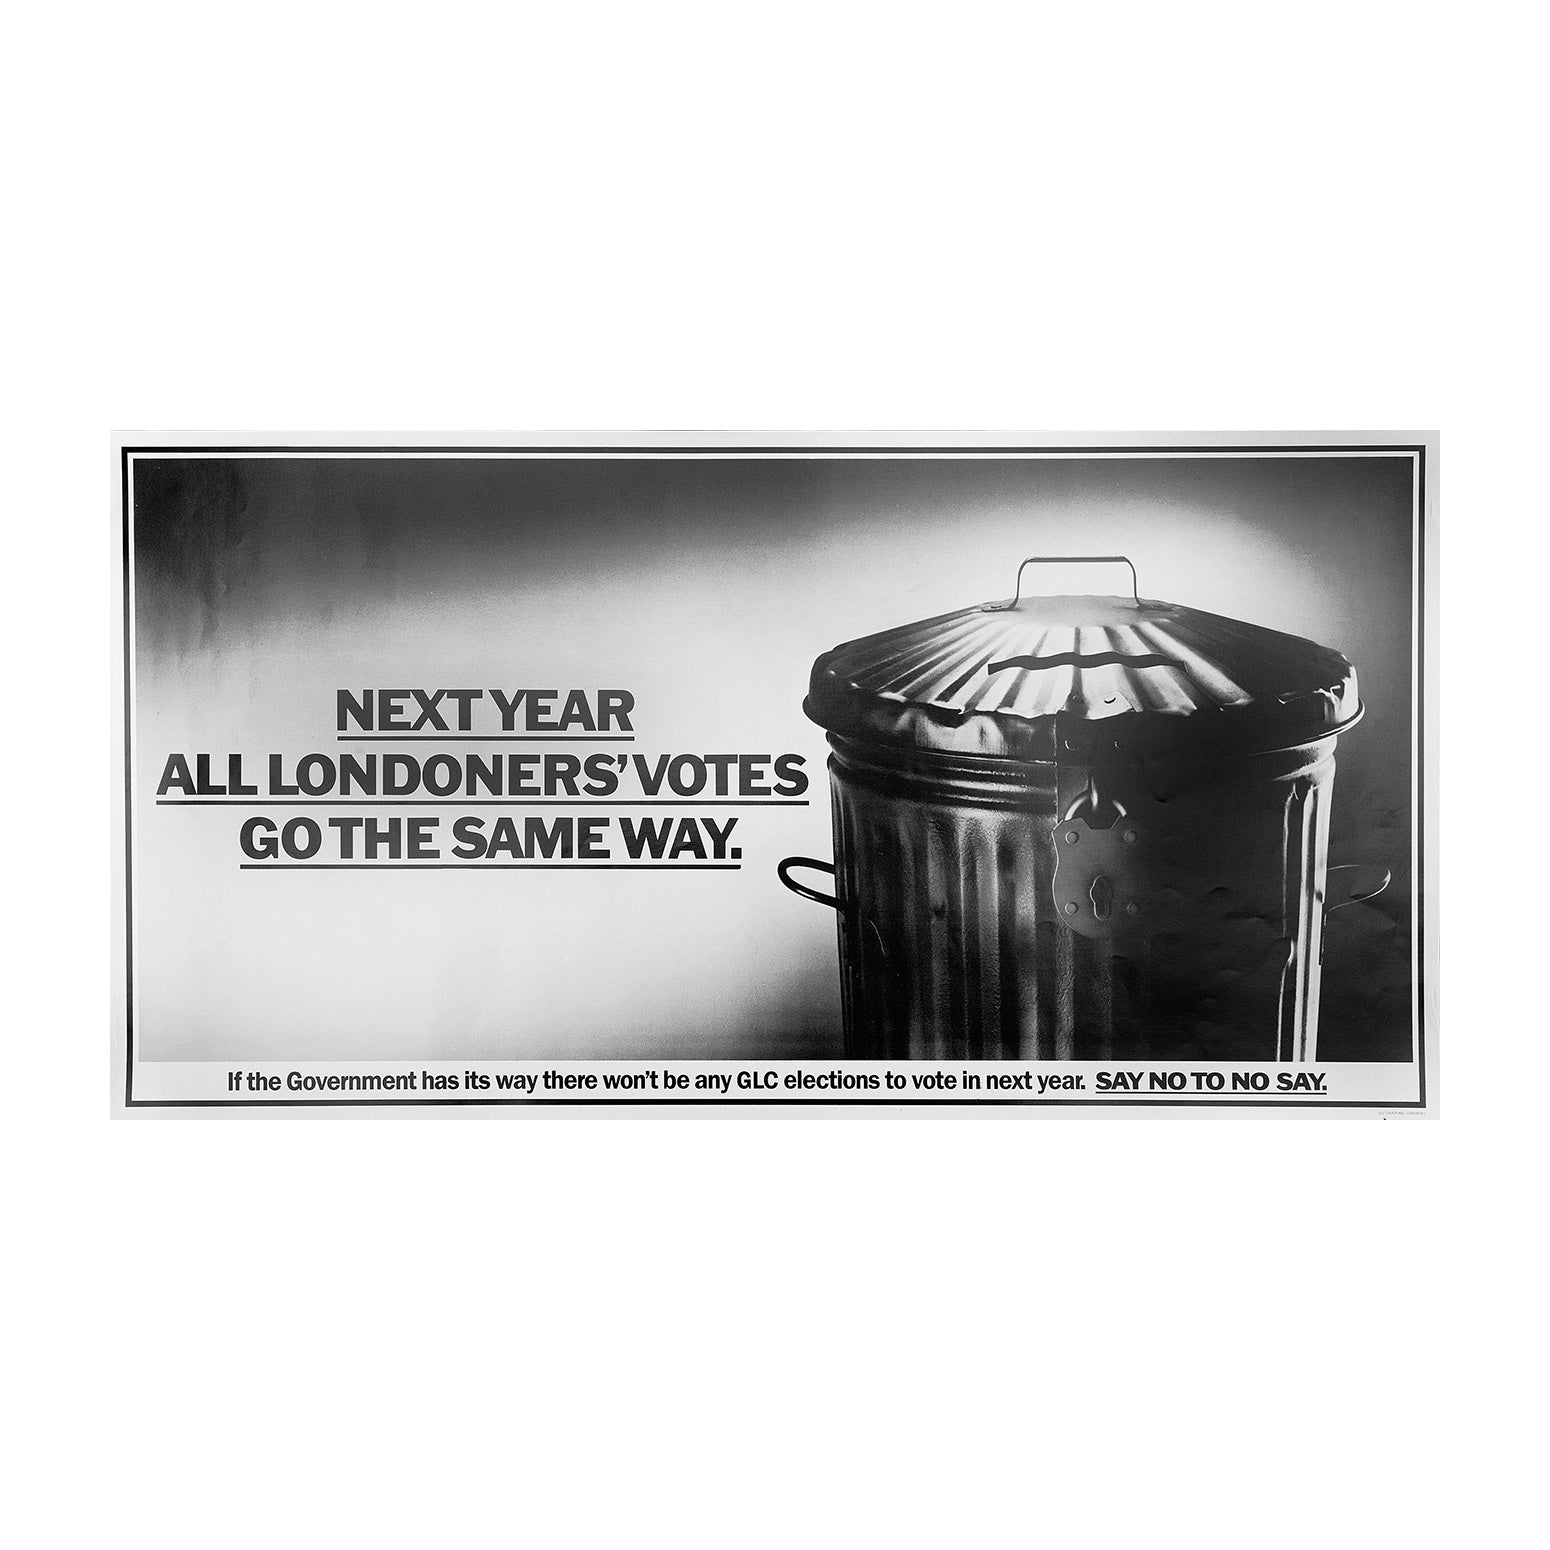 Next year all Londoners' votes go the same way